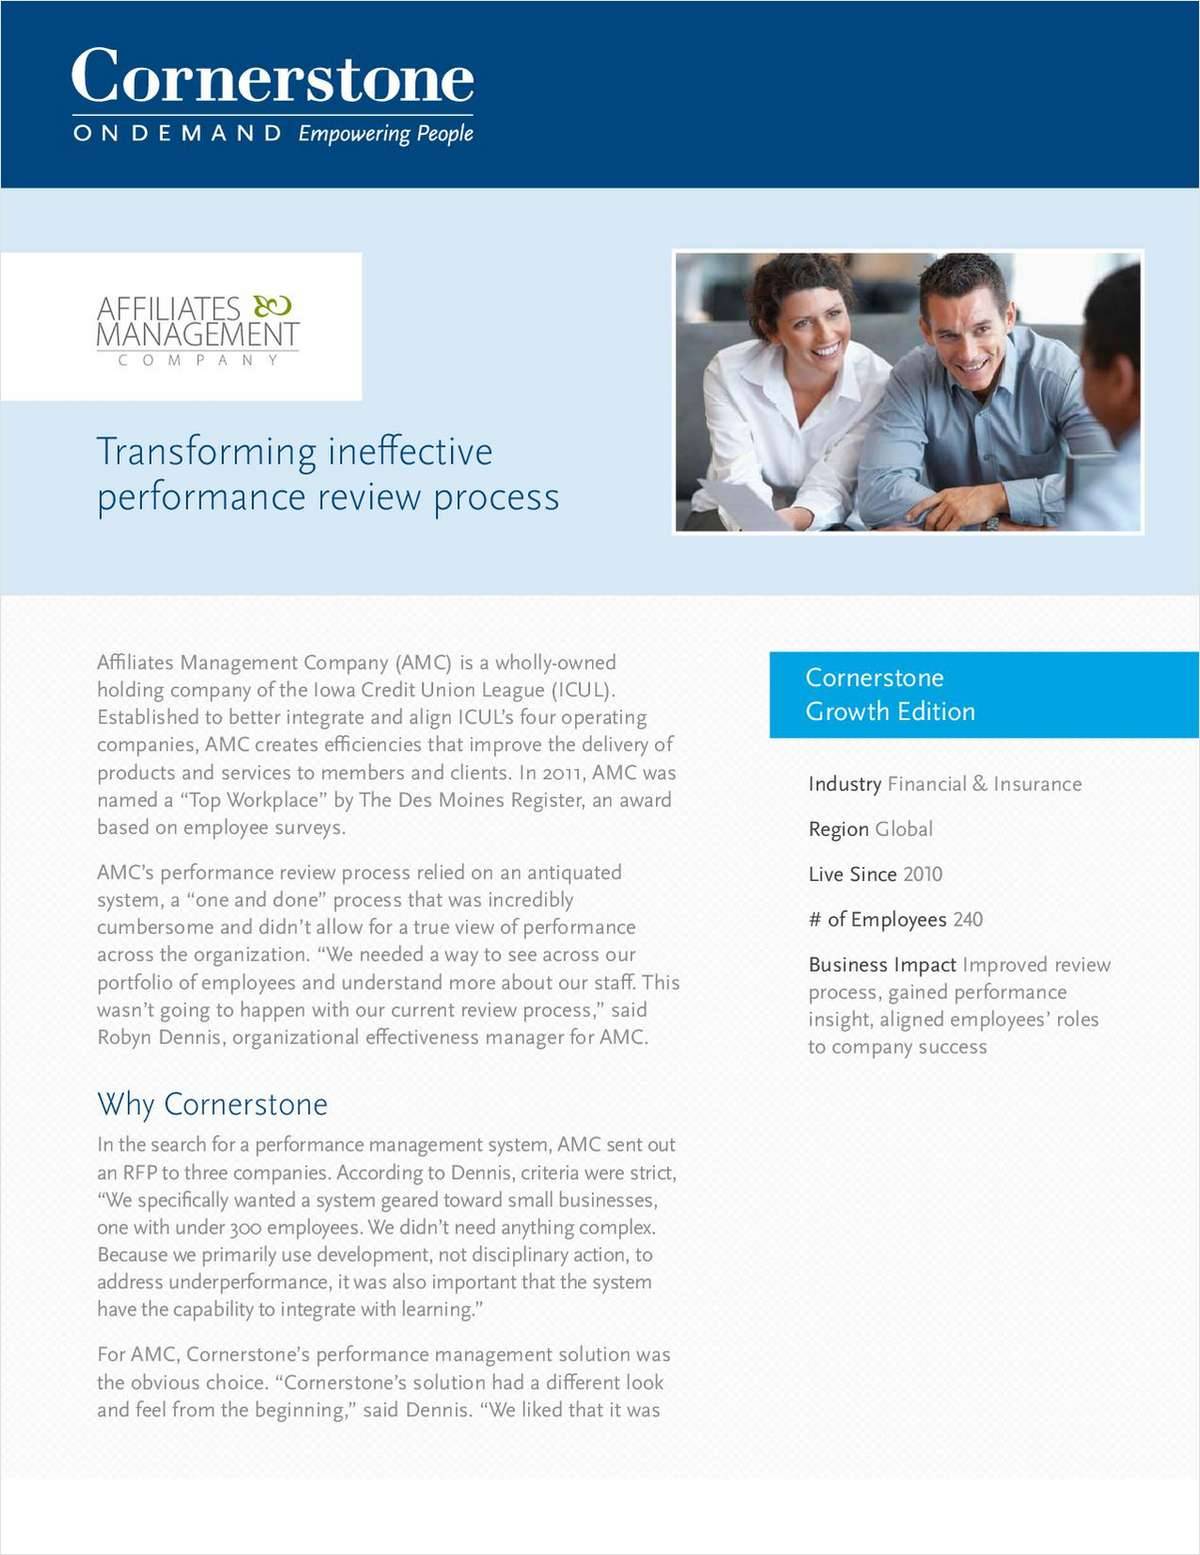 AMC Case Study: Transforming Ineffective Performance Review Process